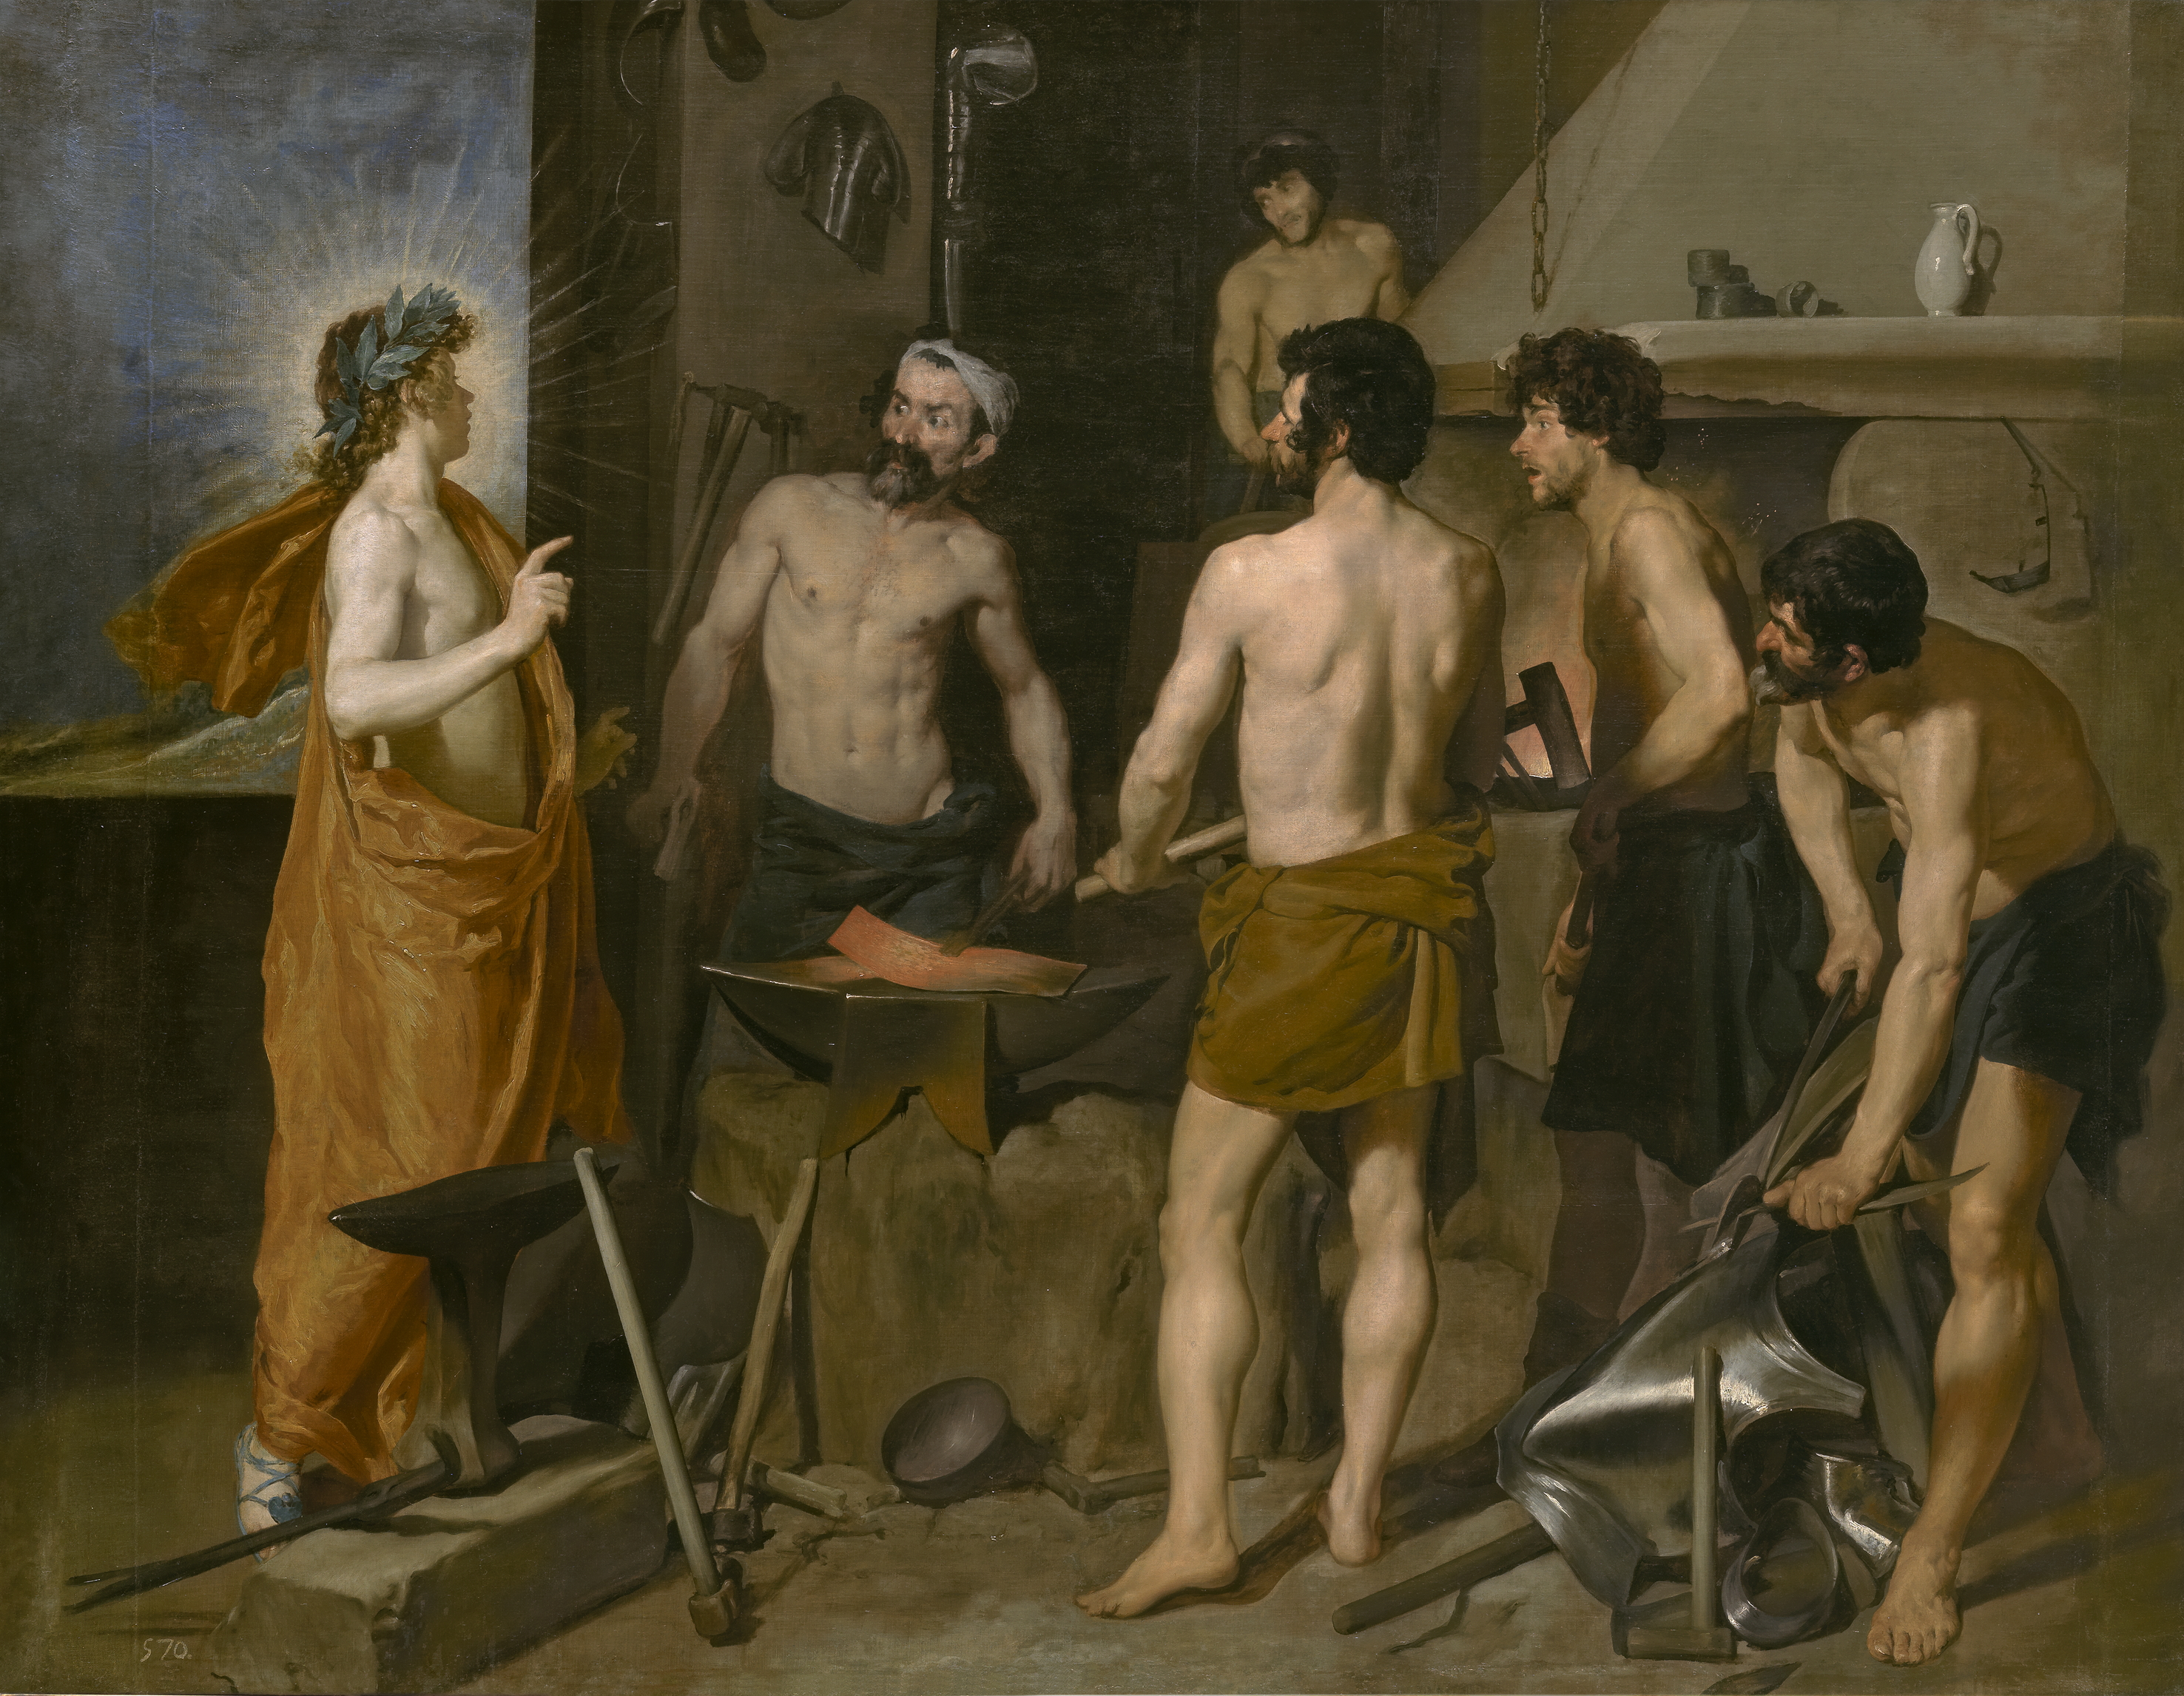 Apollo in the Forge of Vulcan (1630) by Diego Velázquez